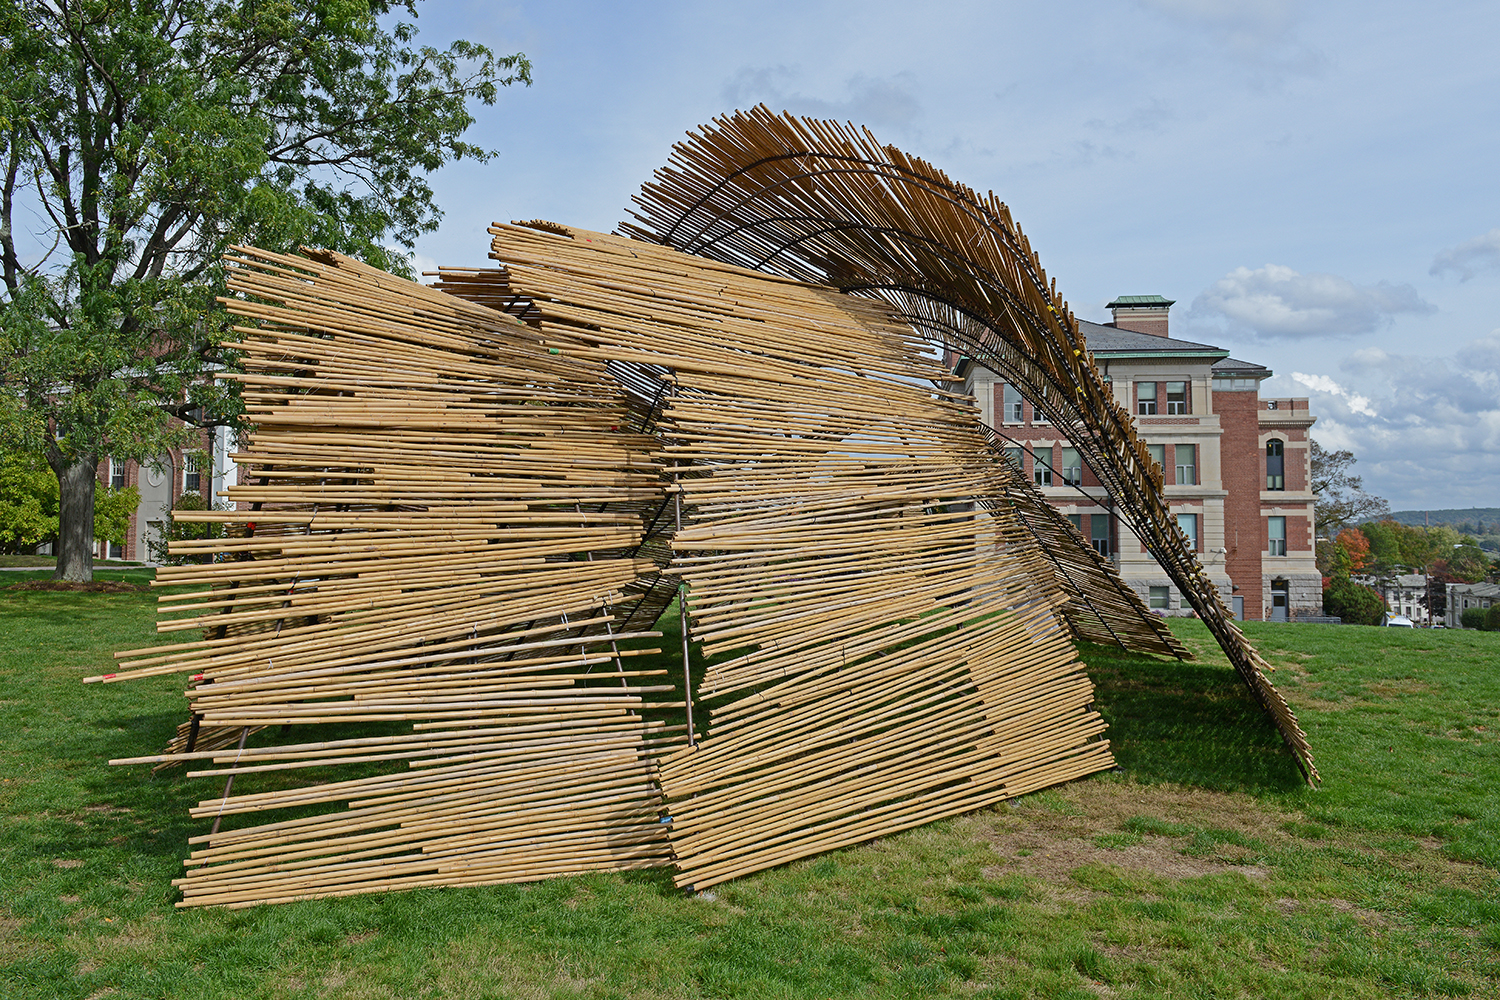 During Sukkot, the Jewish community celebrates the Israelites 40-year journey to the Holy Land inside the bamboo structure.  WesSukkah provides a sacred space that adheres to a complex, medieval Rabbinic building code.